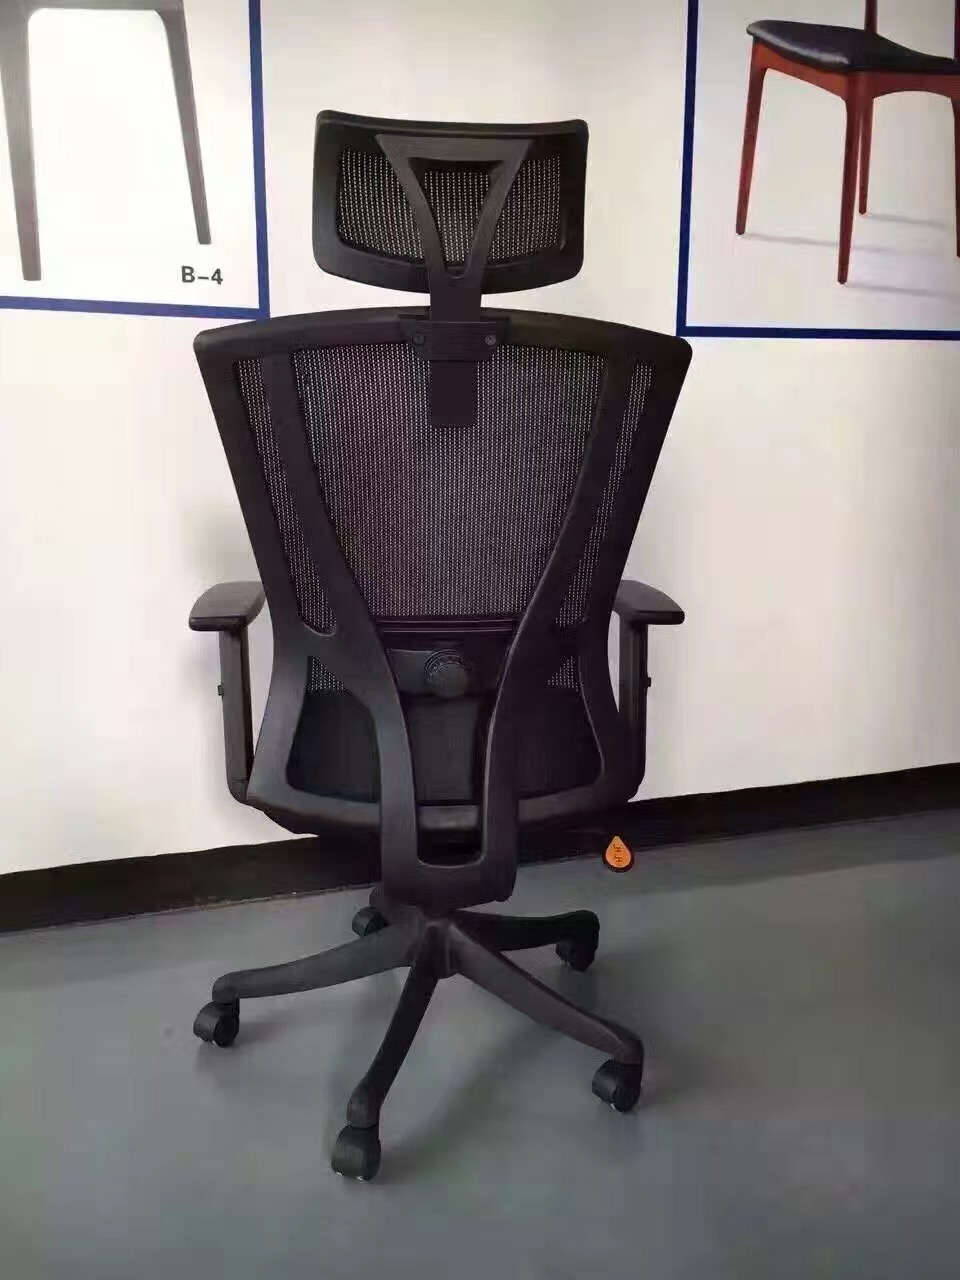 Multifunctional stylish fabric office chair for commercial use